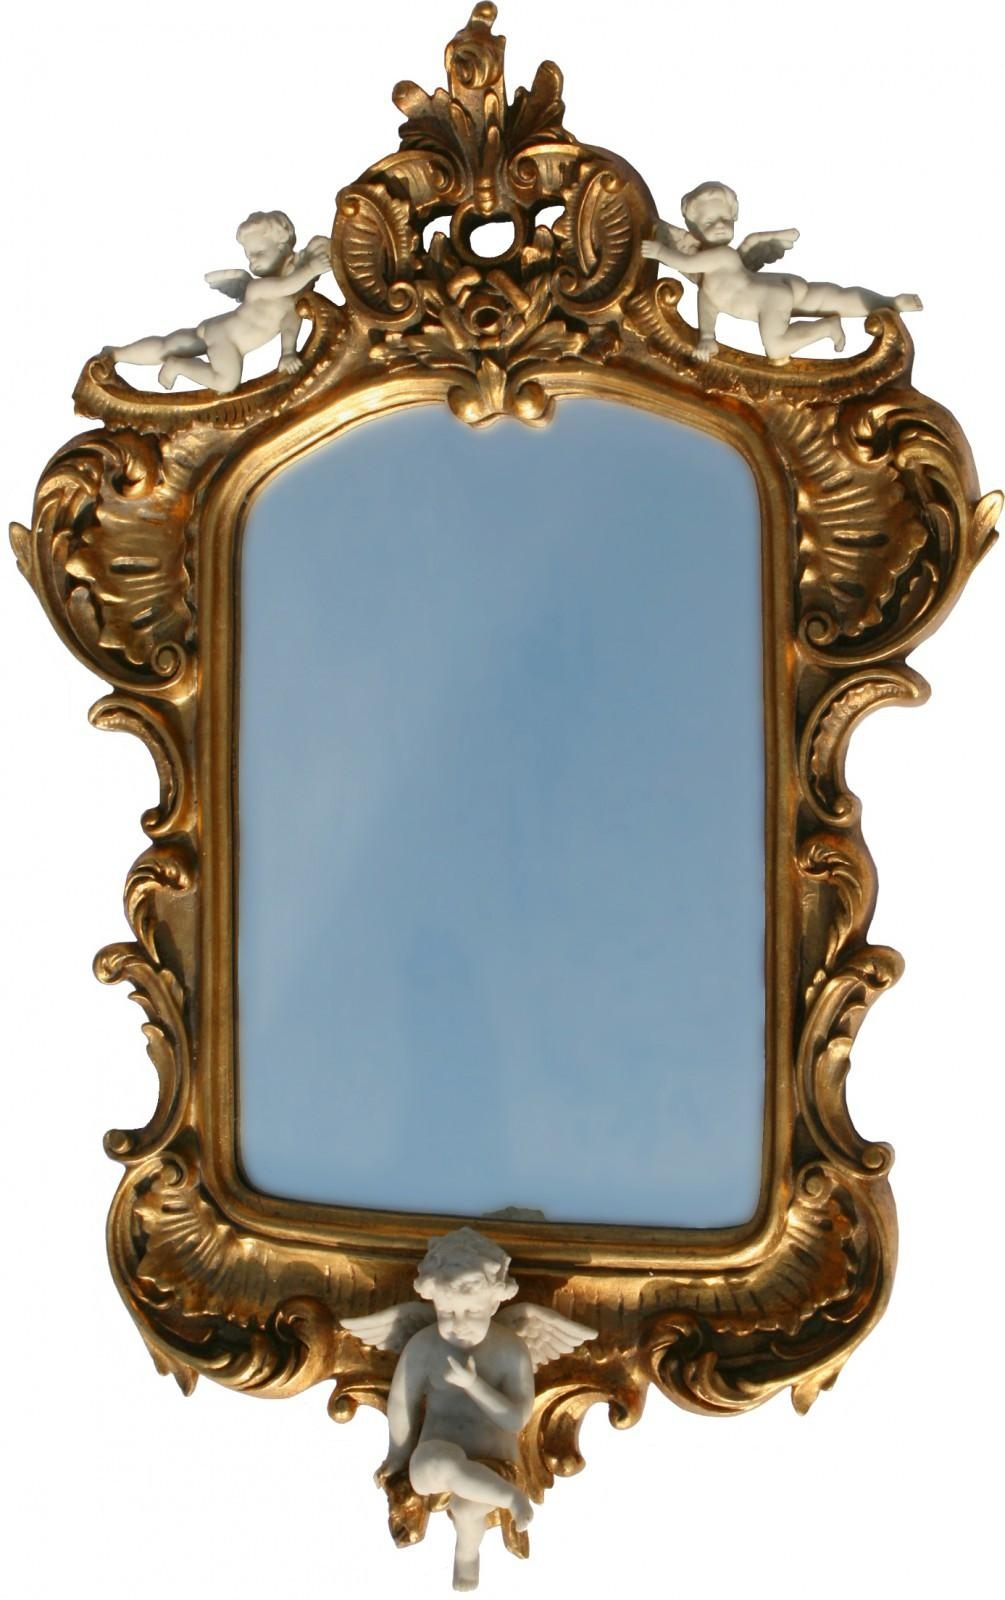 Angel Motif Baroque Mirror In Gold Wooden Frame With Three White In Baroque Mirror Gold (Image 3 of 20)